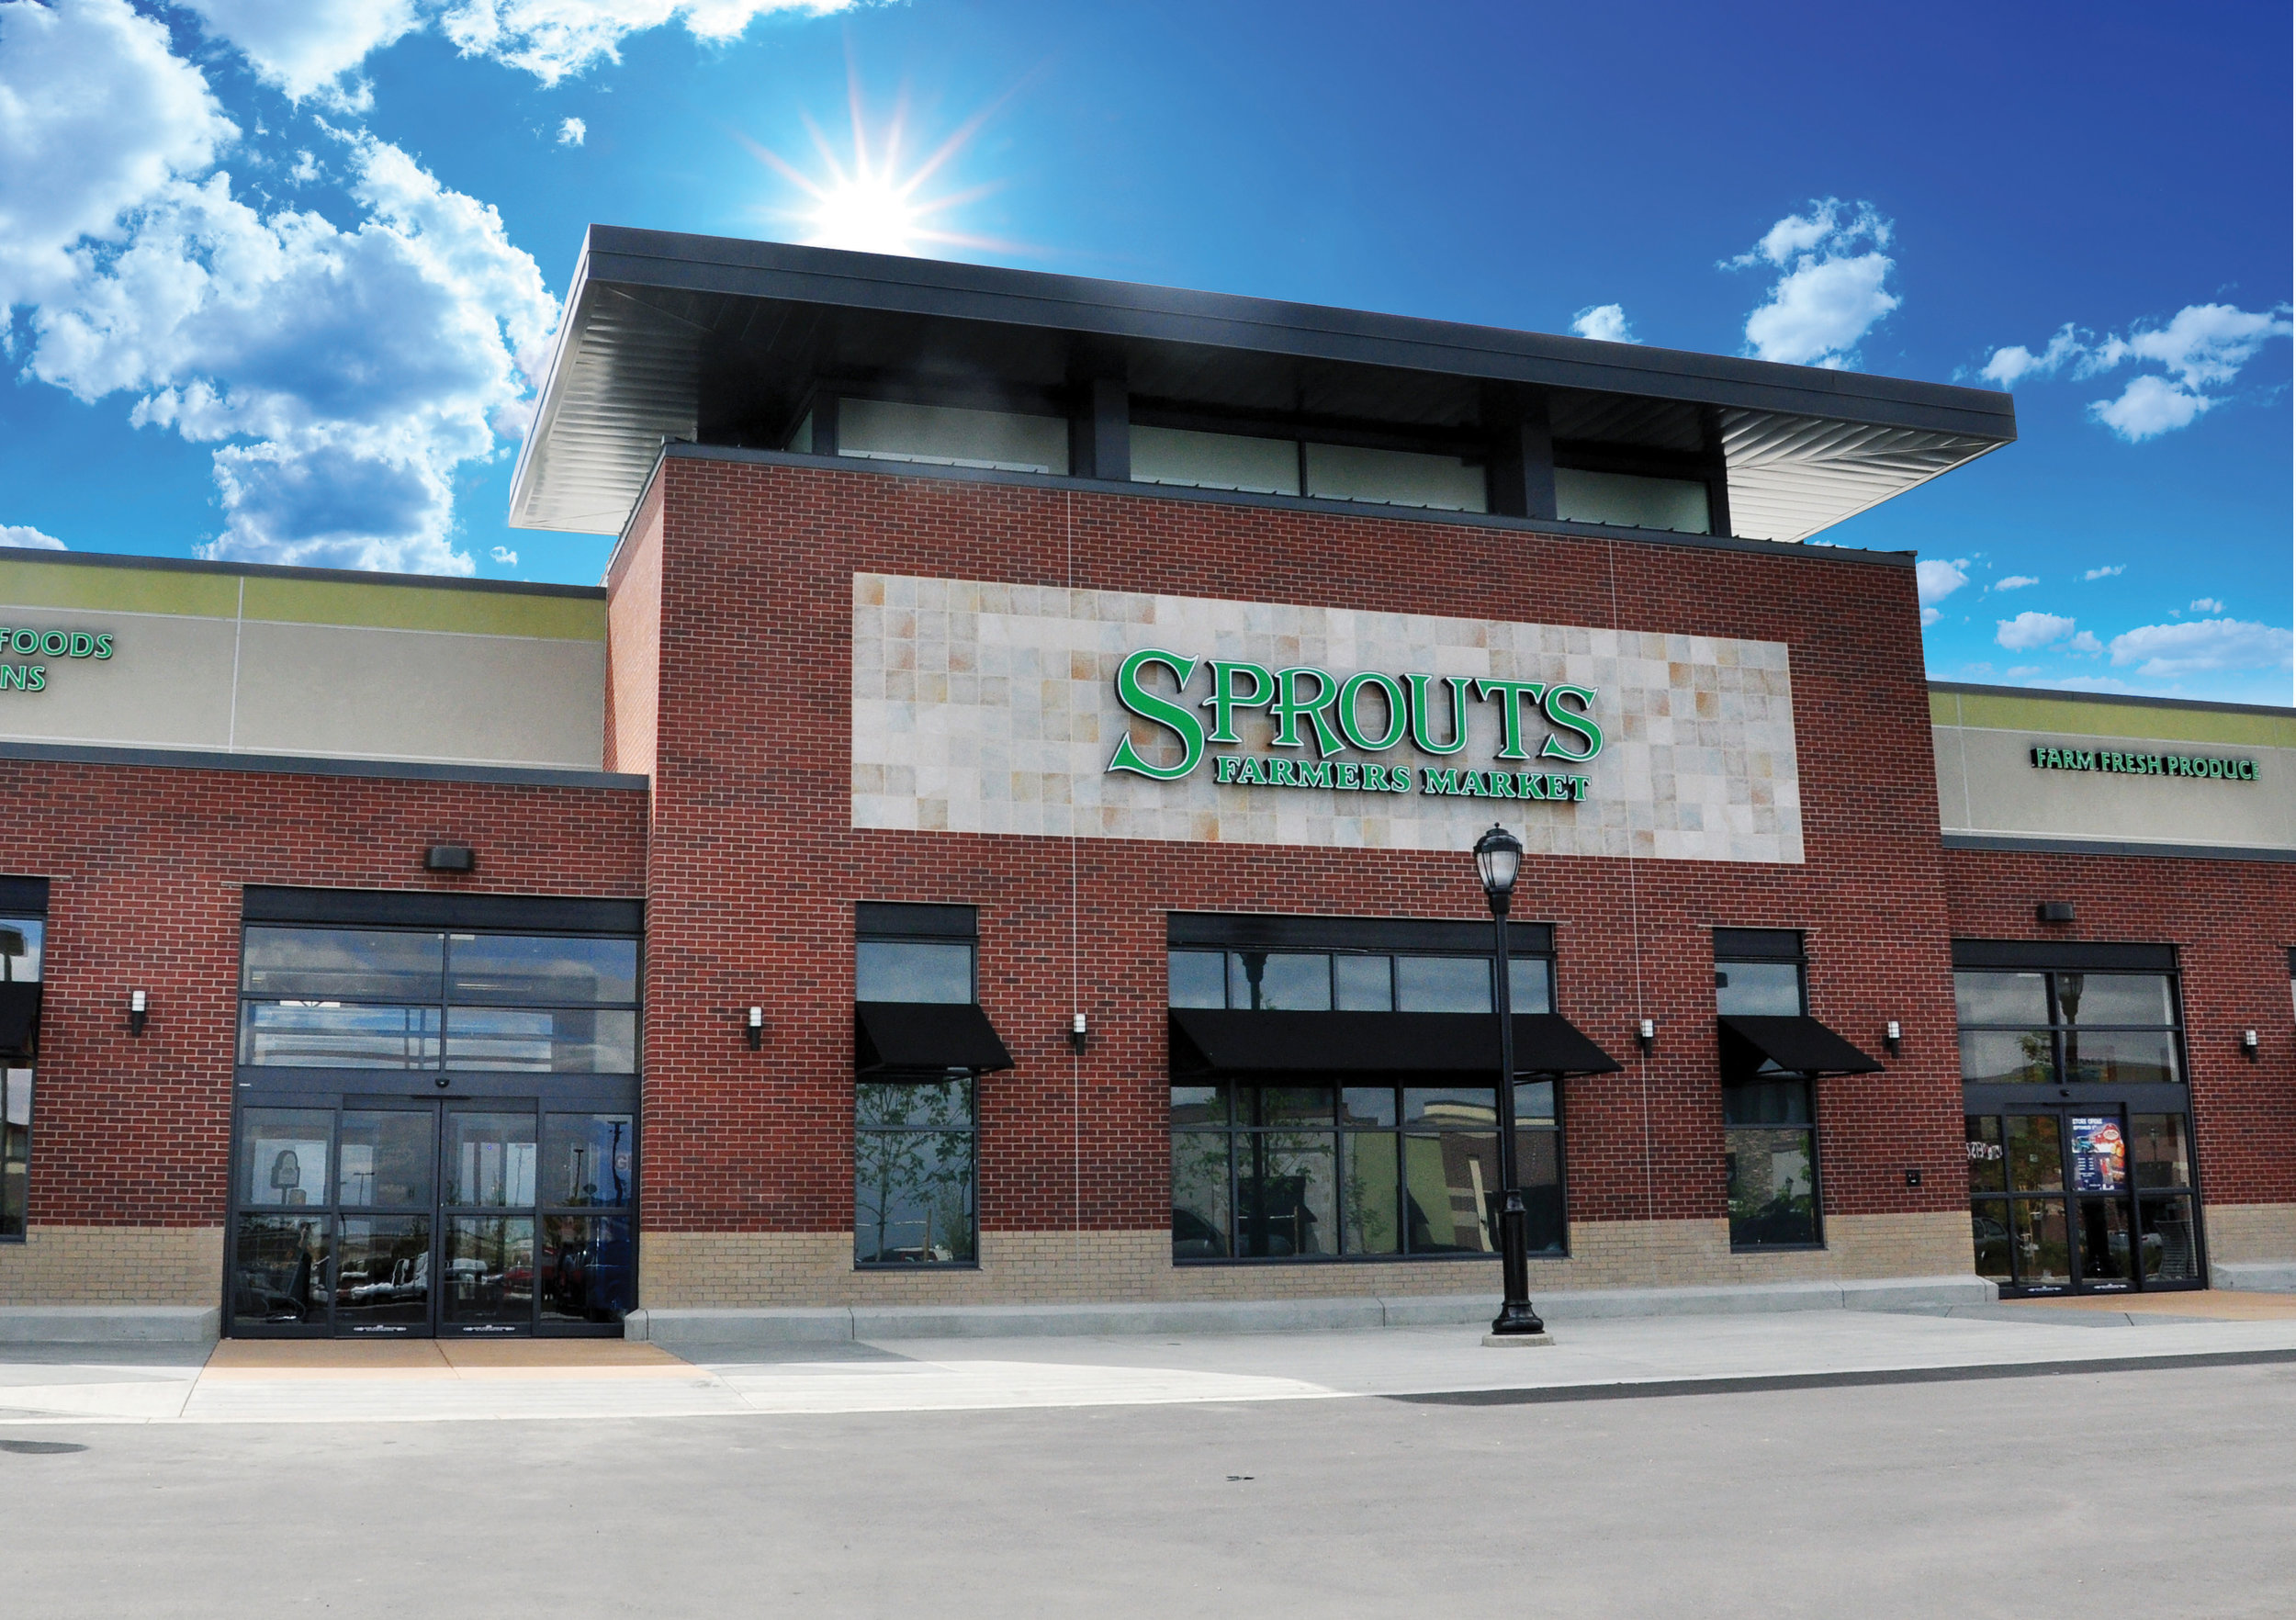 Sprouts-Storefront copy.jpg